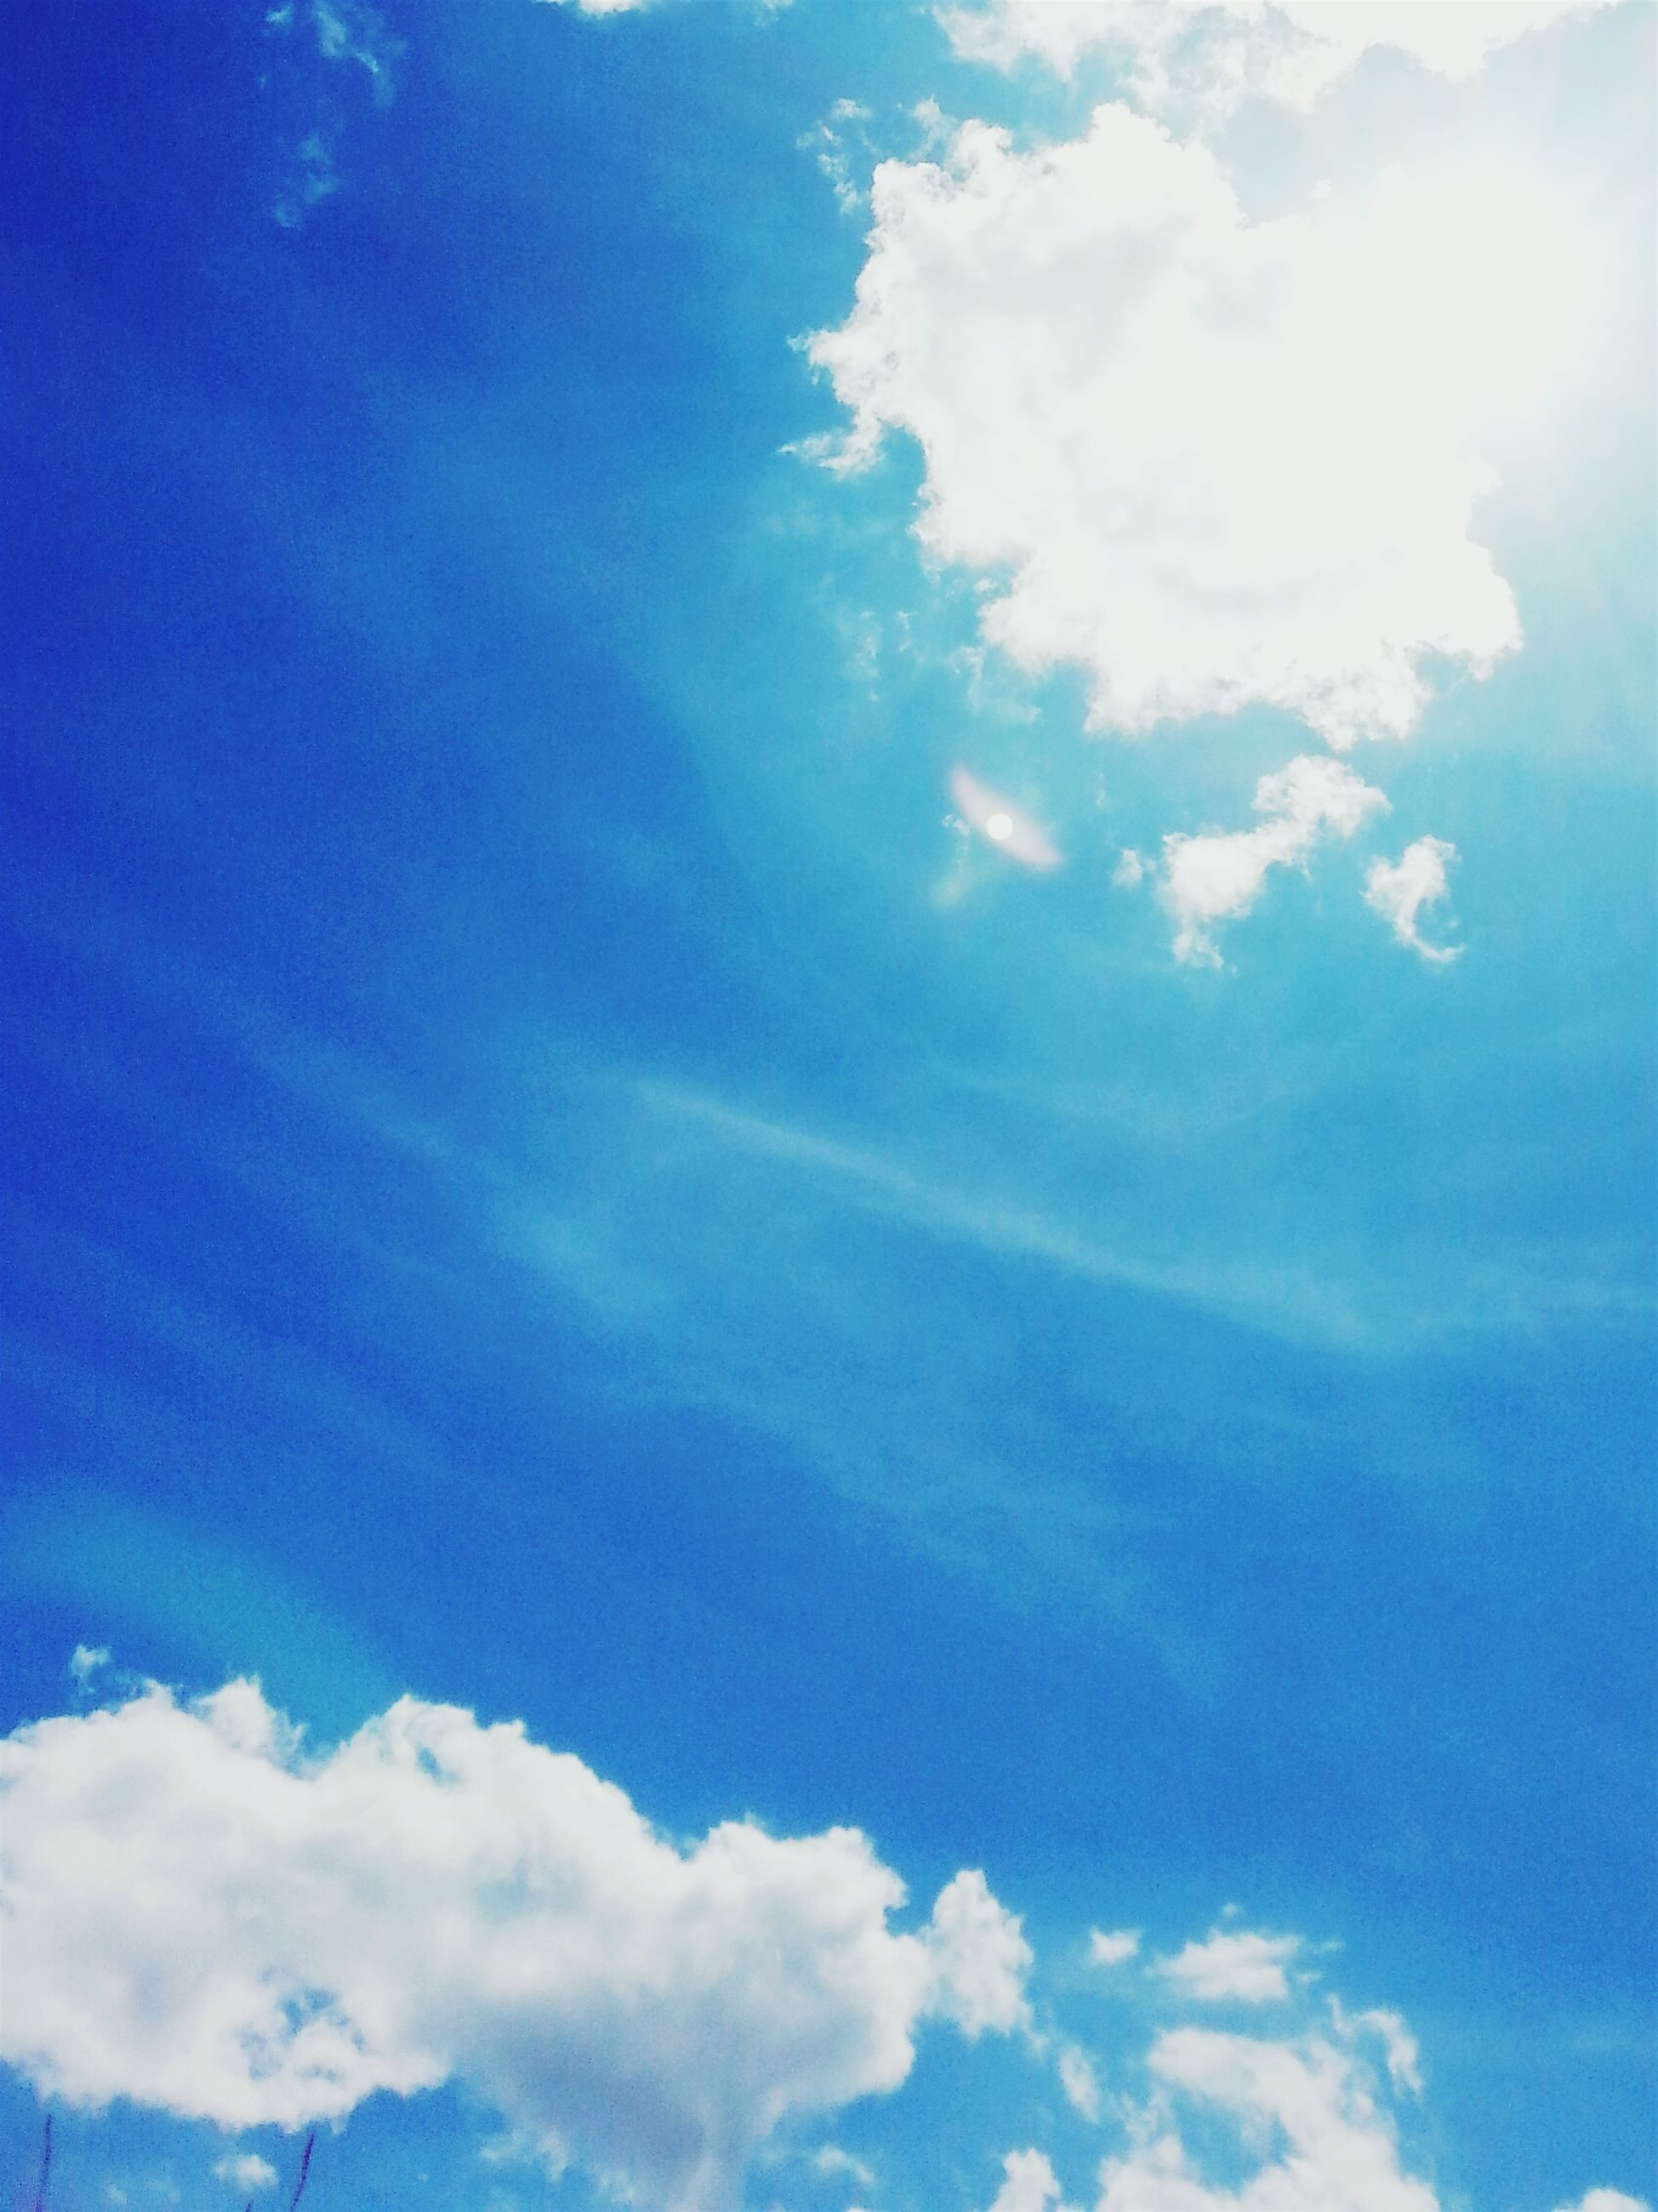 low angle view, blue, sky, cloud - sky, beauty in nature, tranquility, sky only, scenics, nature, cloud, tranquil scene, cloudy, sunlight, cloudscape, idyllic, day, backgrounds, outdoors, no people, sunbeam